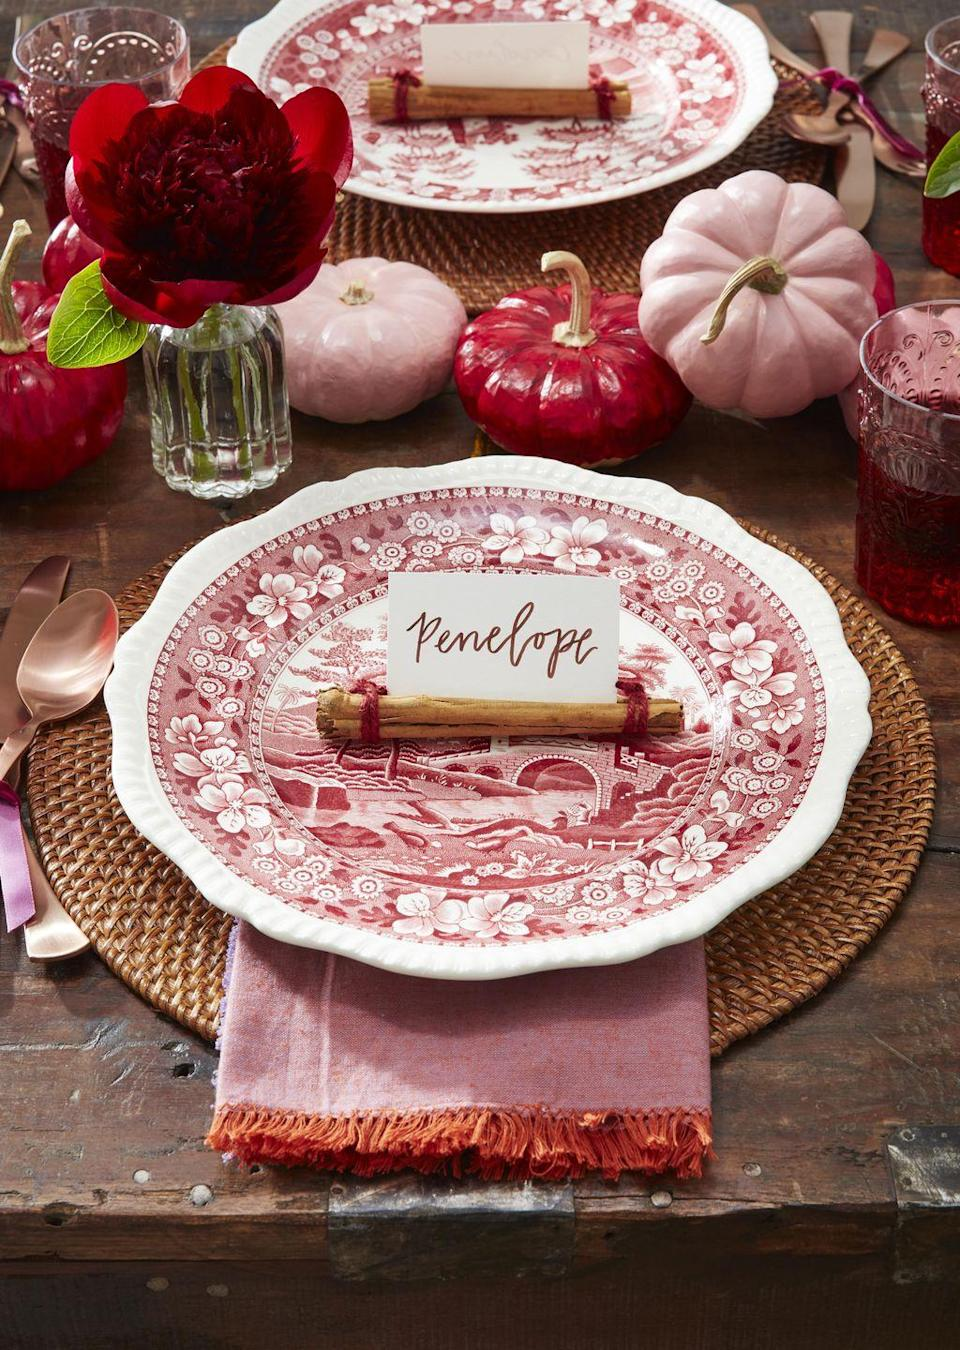 """<p>Welcome guests with a the scent of warm spices. Wrap the ends of cinnamon sticks in red twine and slip place cards in the stick's natural crevice to create place cards.</p><p><a class=""""link rapid-noclick-resp"""" href=""""https://www.amazon.com/Soeos-Cinnamon-Sticks-Premium-Quality/dp/B07MXRWF8K/ref=sr_1_1_sspa?tag=syn-yahoo-20&ascsubtag=%5Bartid%7C10050.g.1371%5Bsrc%7Cyahoo-us"""" rel=""""nofollow noopener"""" target=""""_blank"""" data-ylk=""""slk:SHOP CINNAMON STICKS"""">SHOP CINNAMON STICKS</a></p>"""